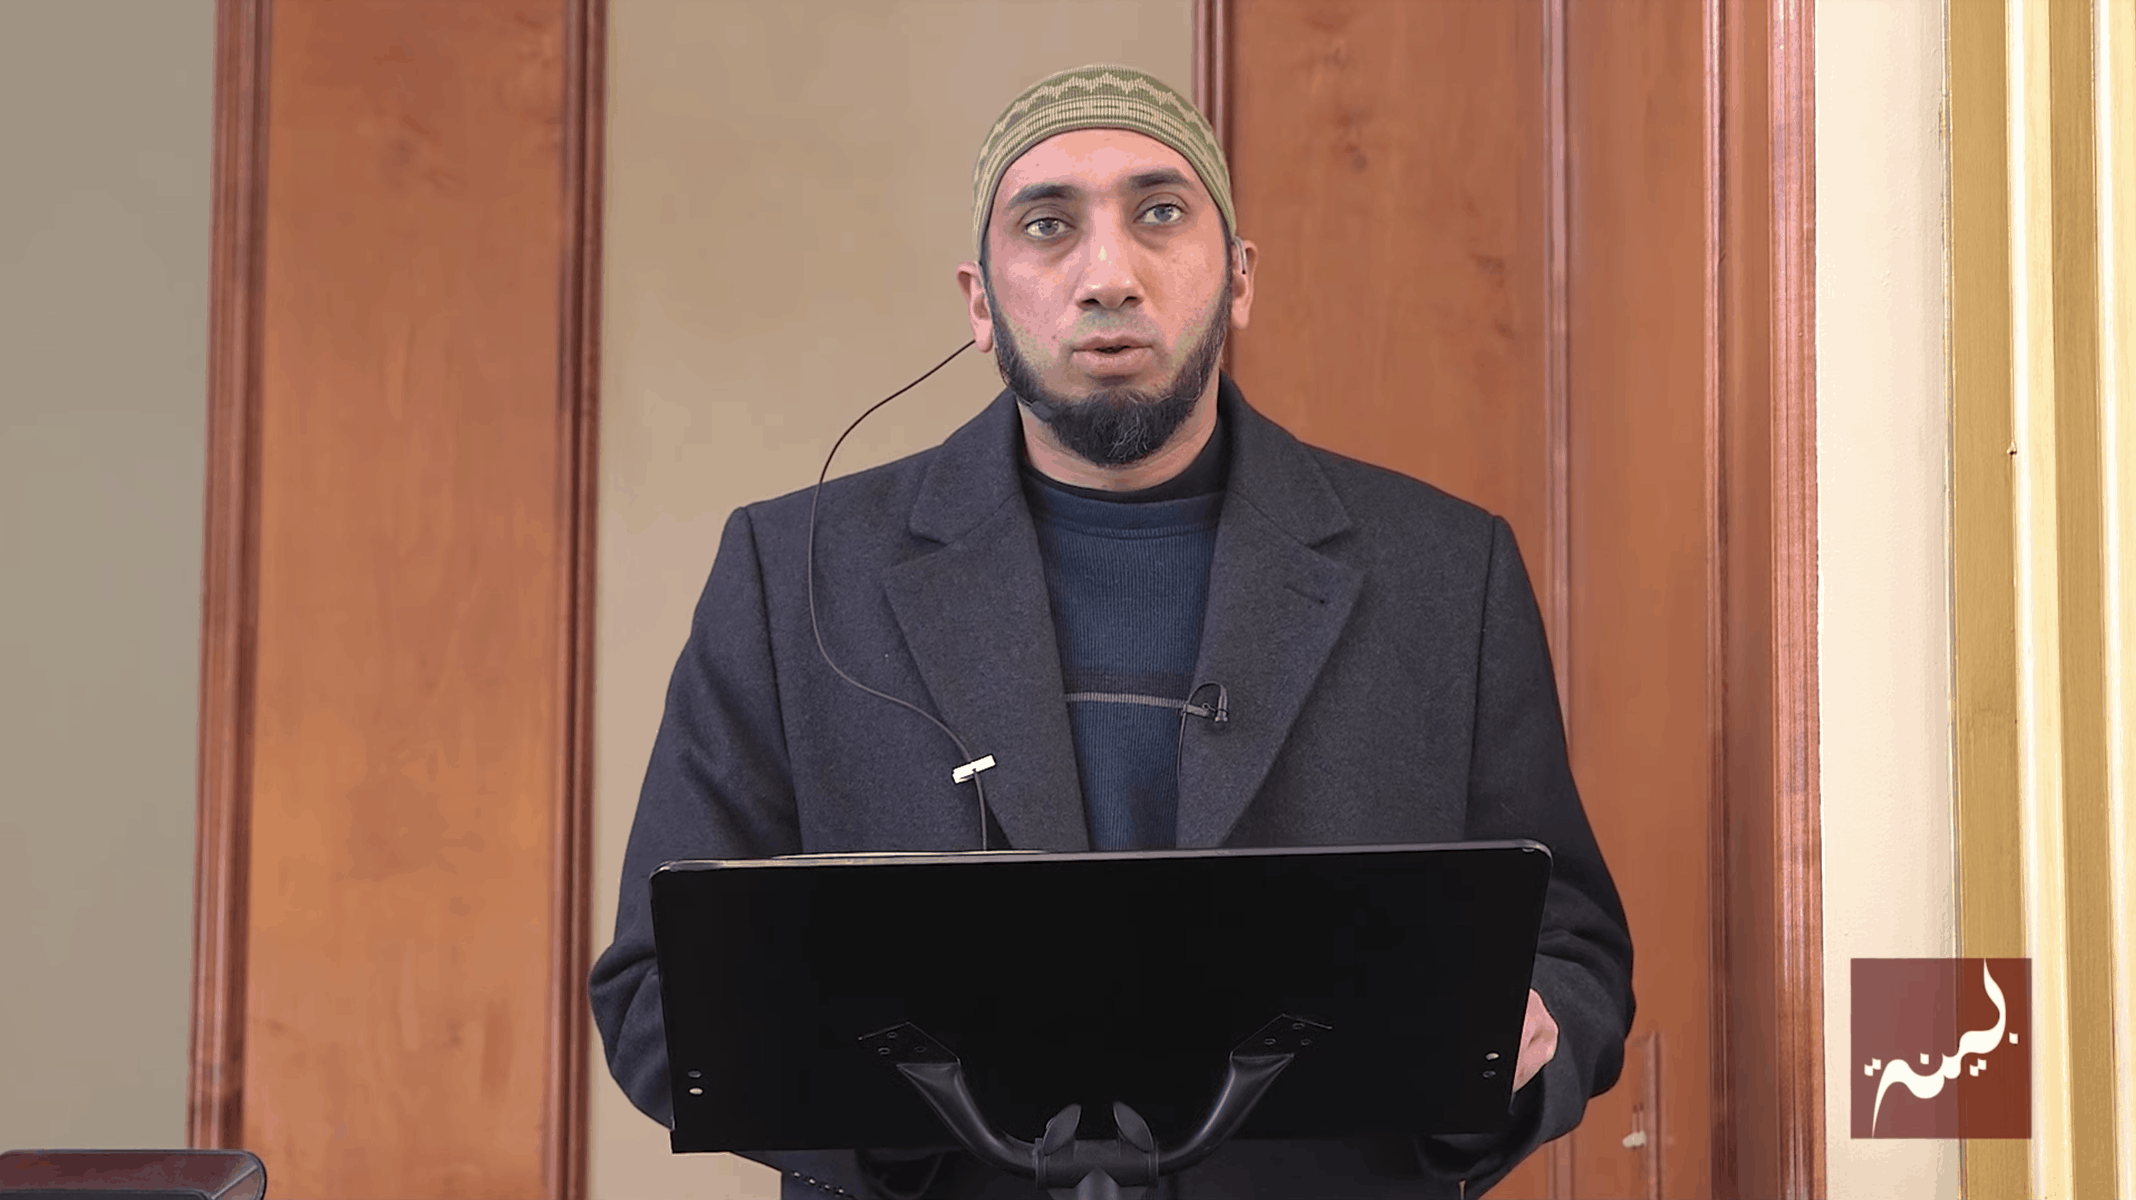 Nouman Ali Khan – Mocking Others and Arrogance